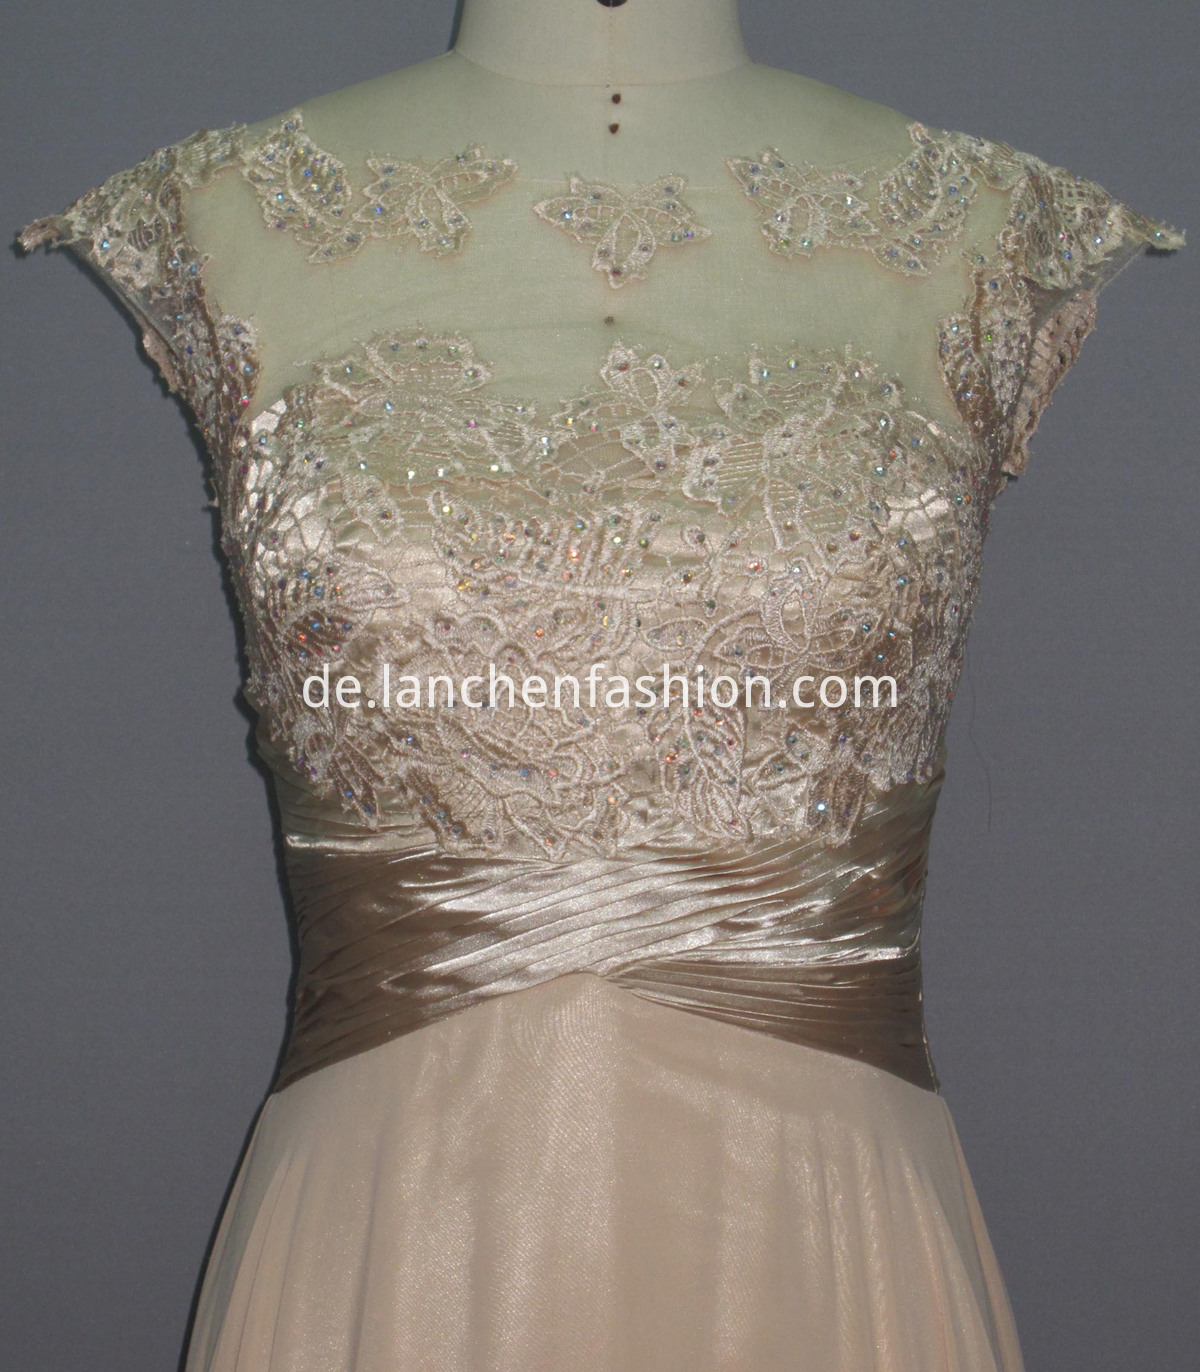 Women's Lace Dress IVORY